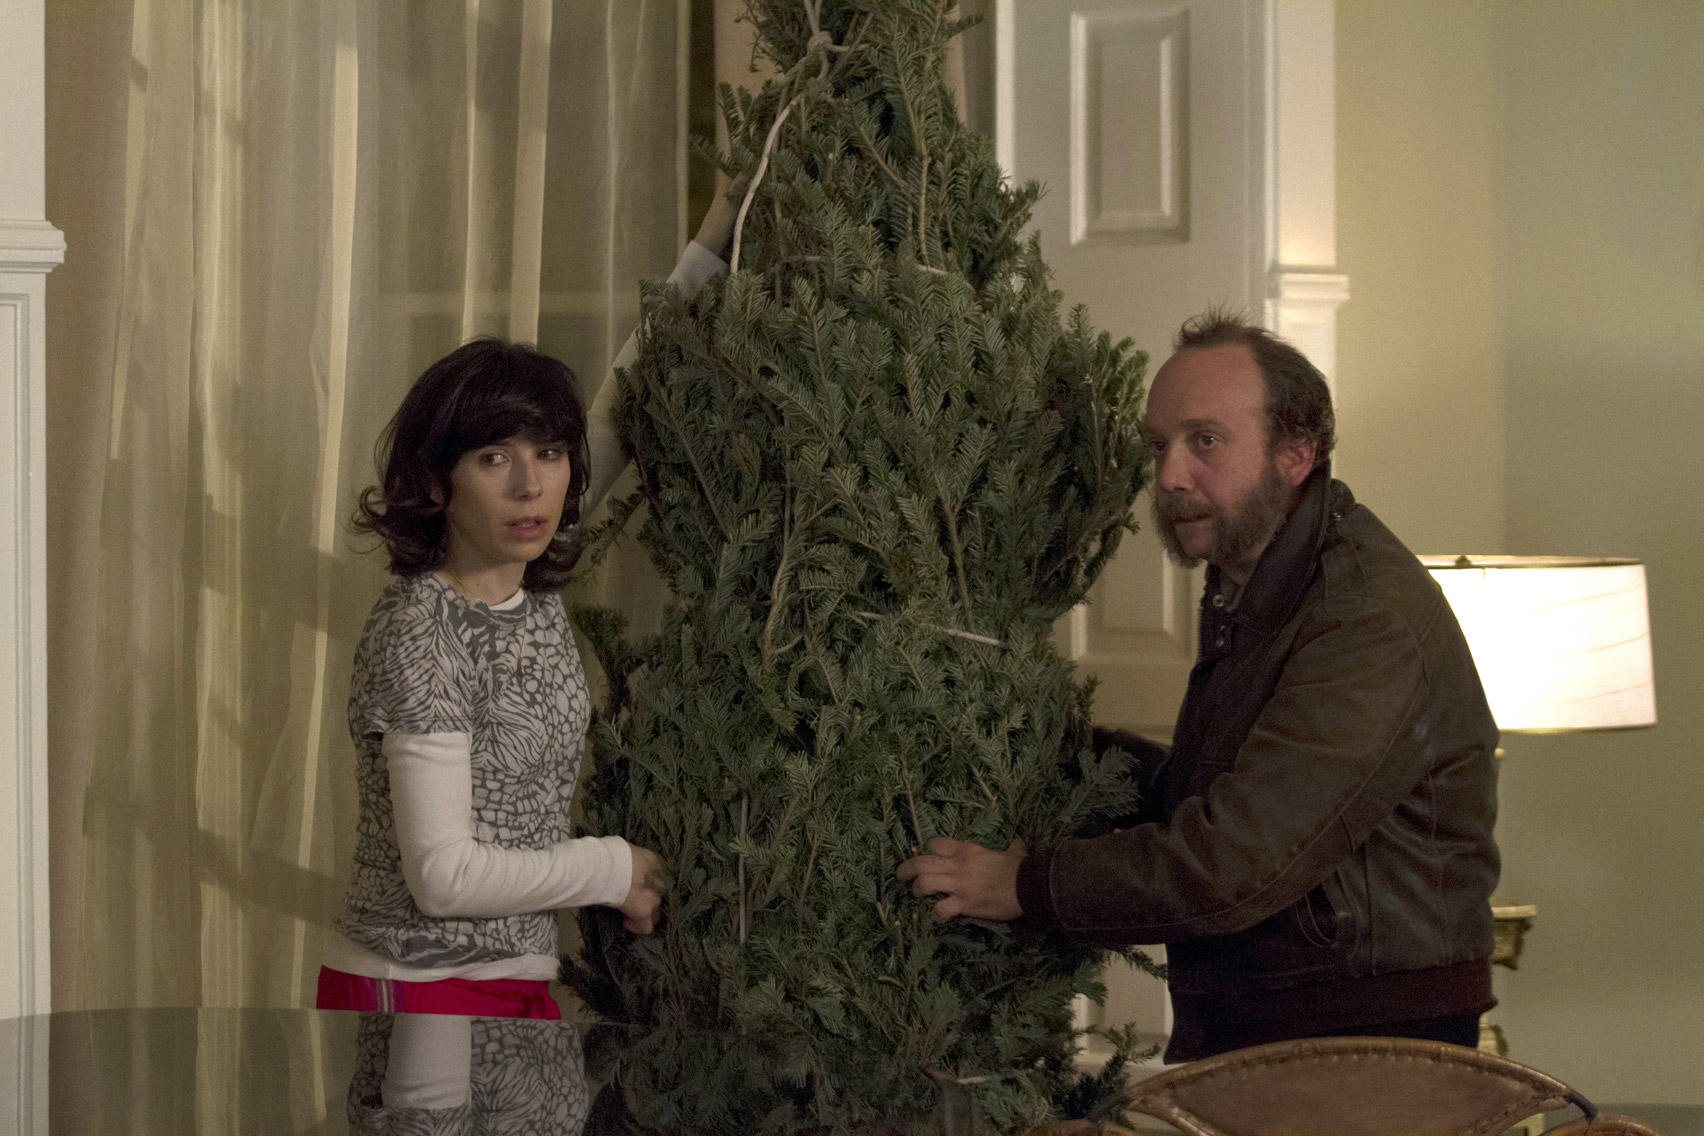 Paul Giamatti as Denis and Sally Hawkins as Olga in